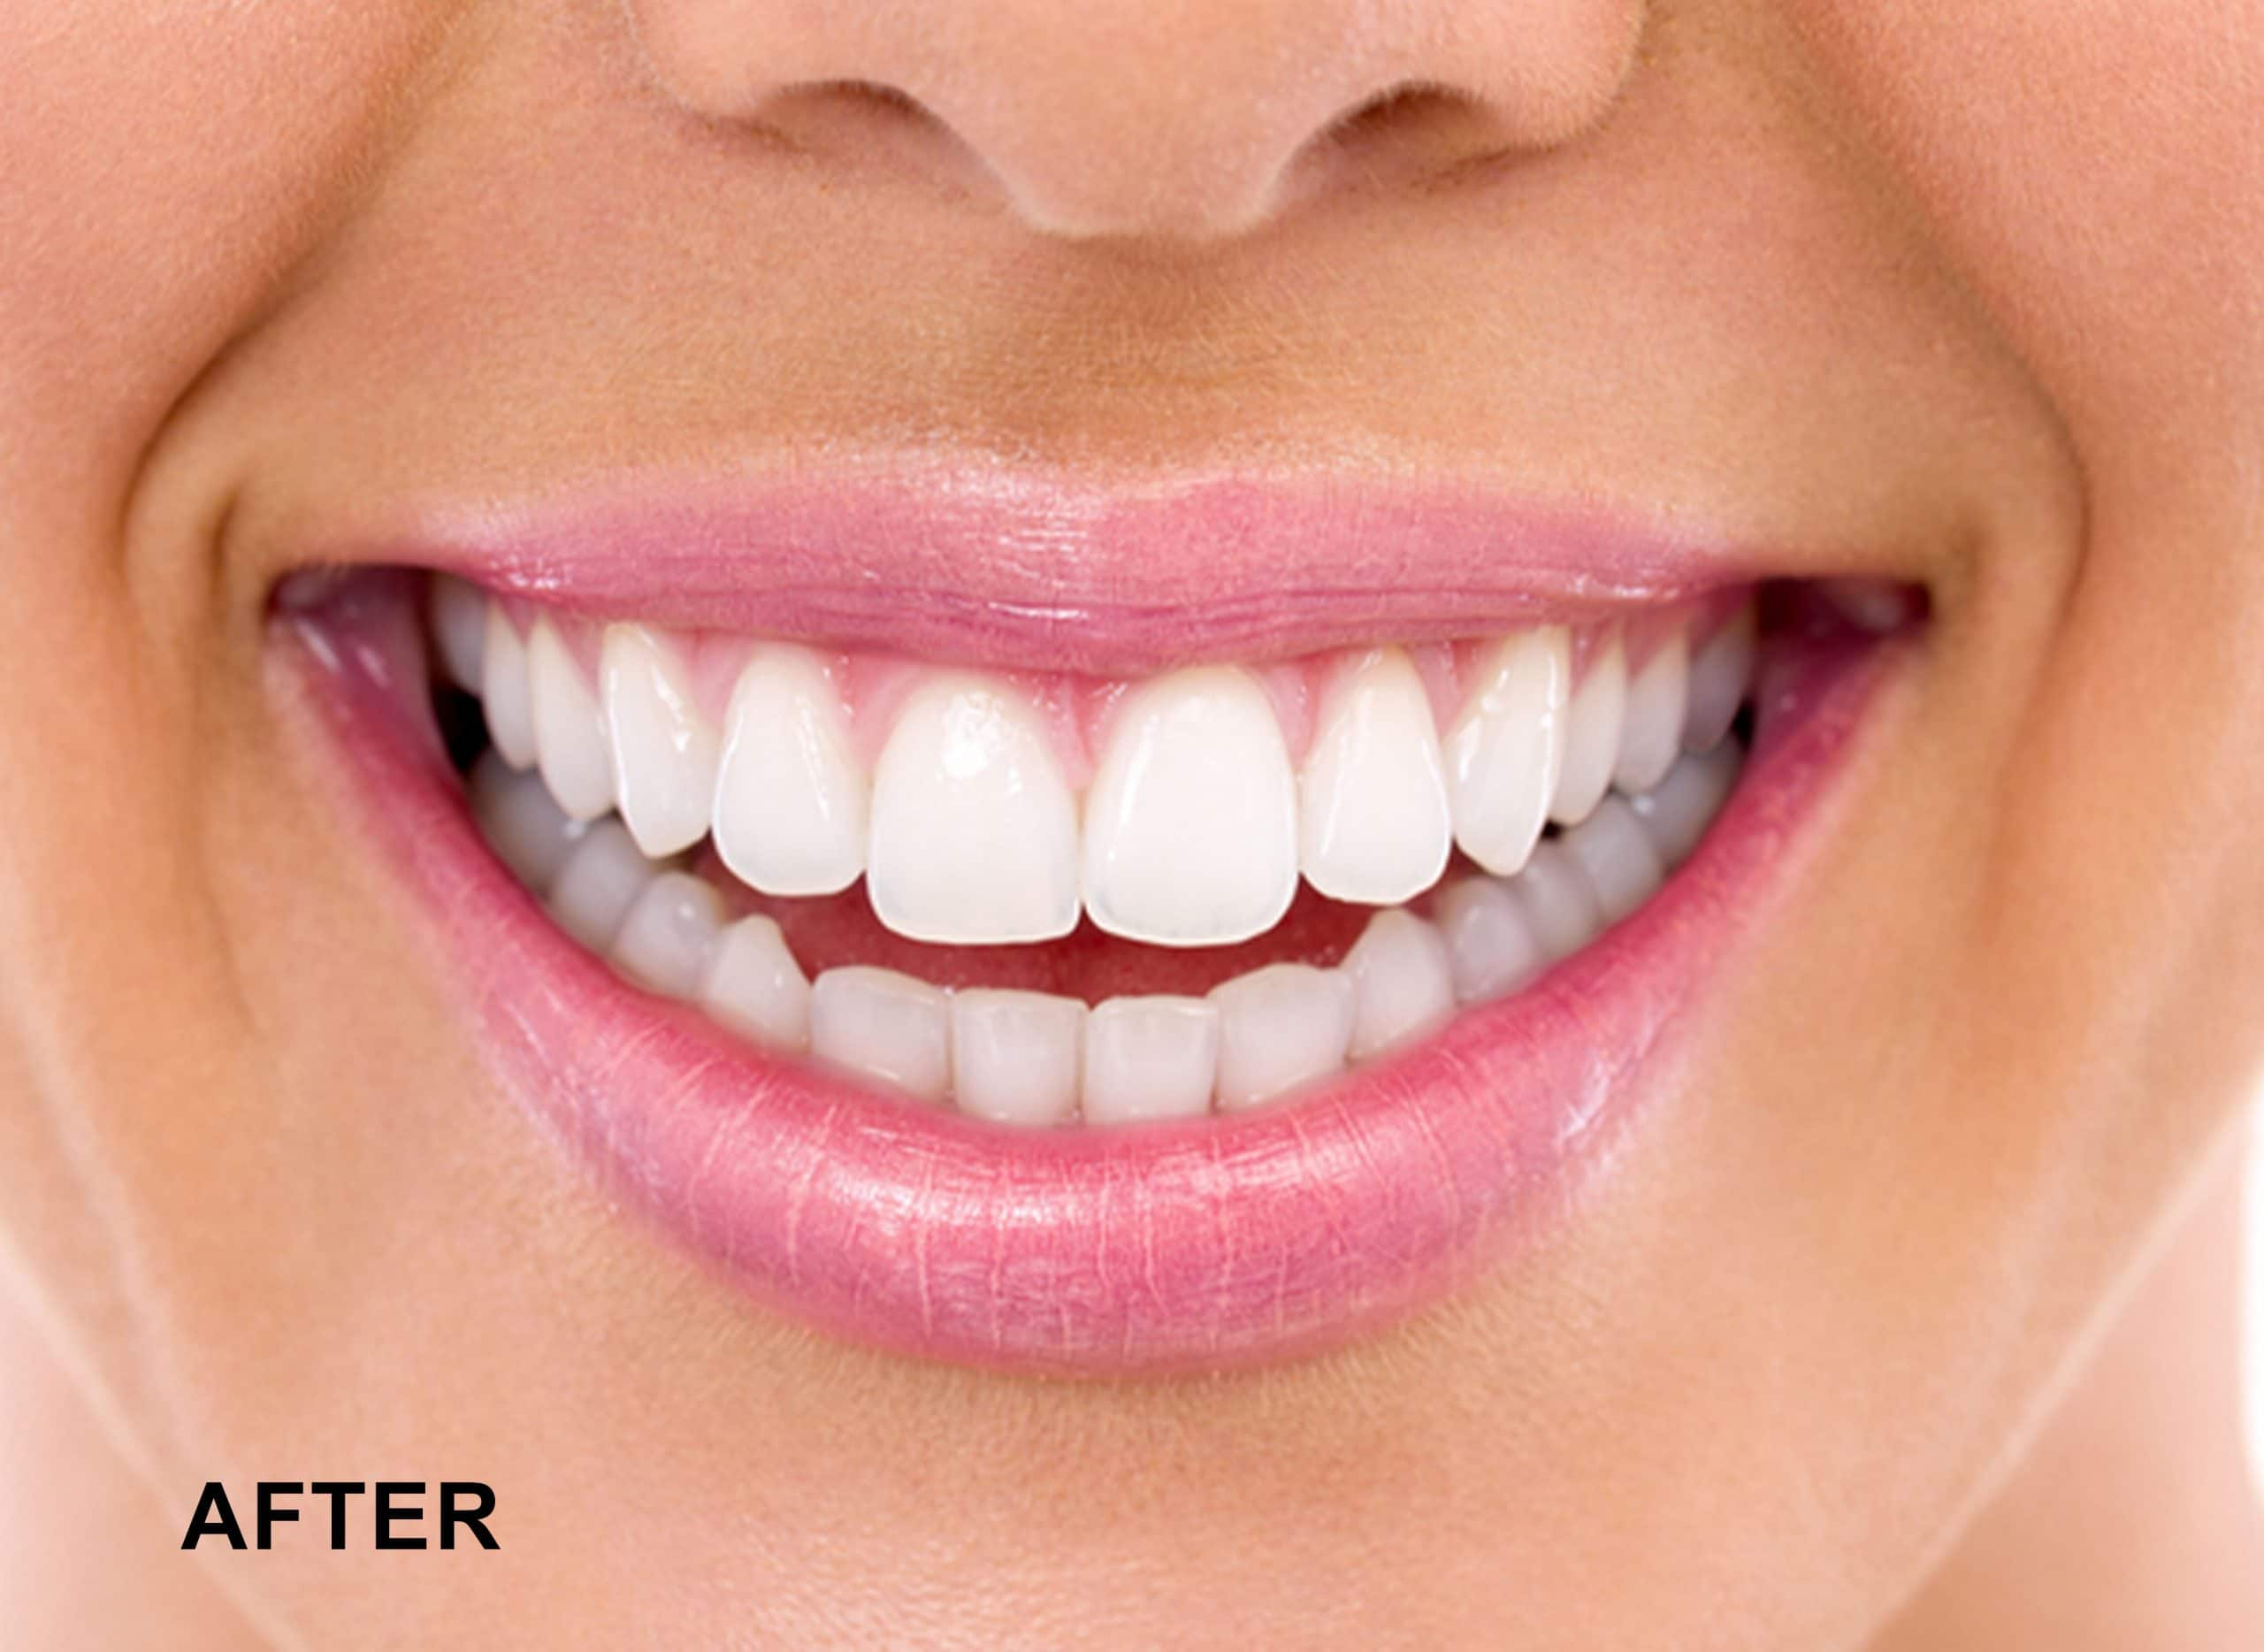 A woman's teeth before being whitened